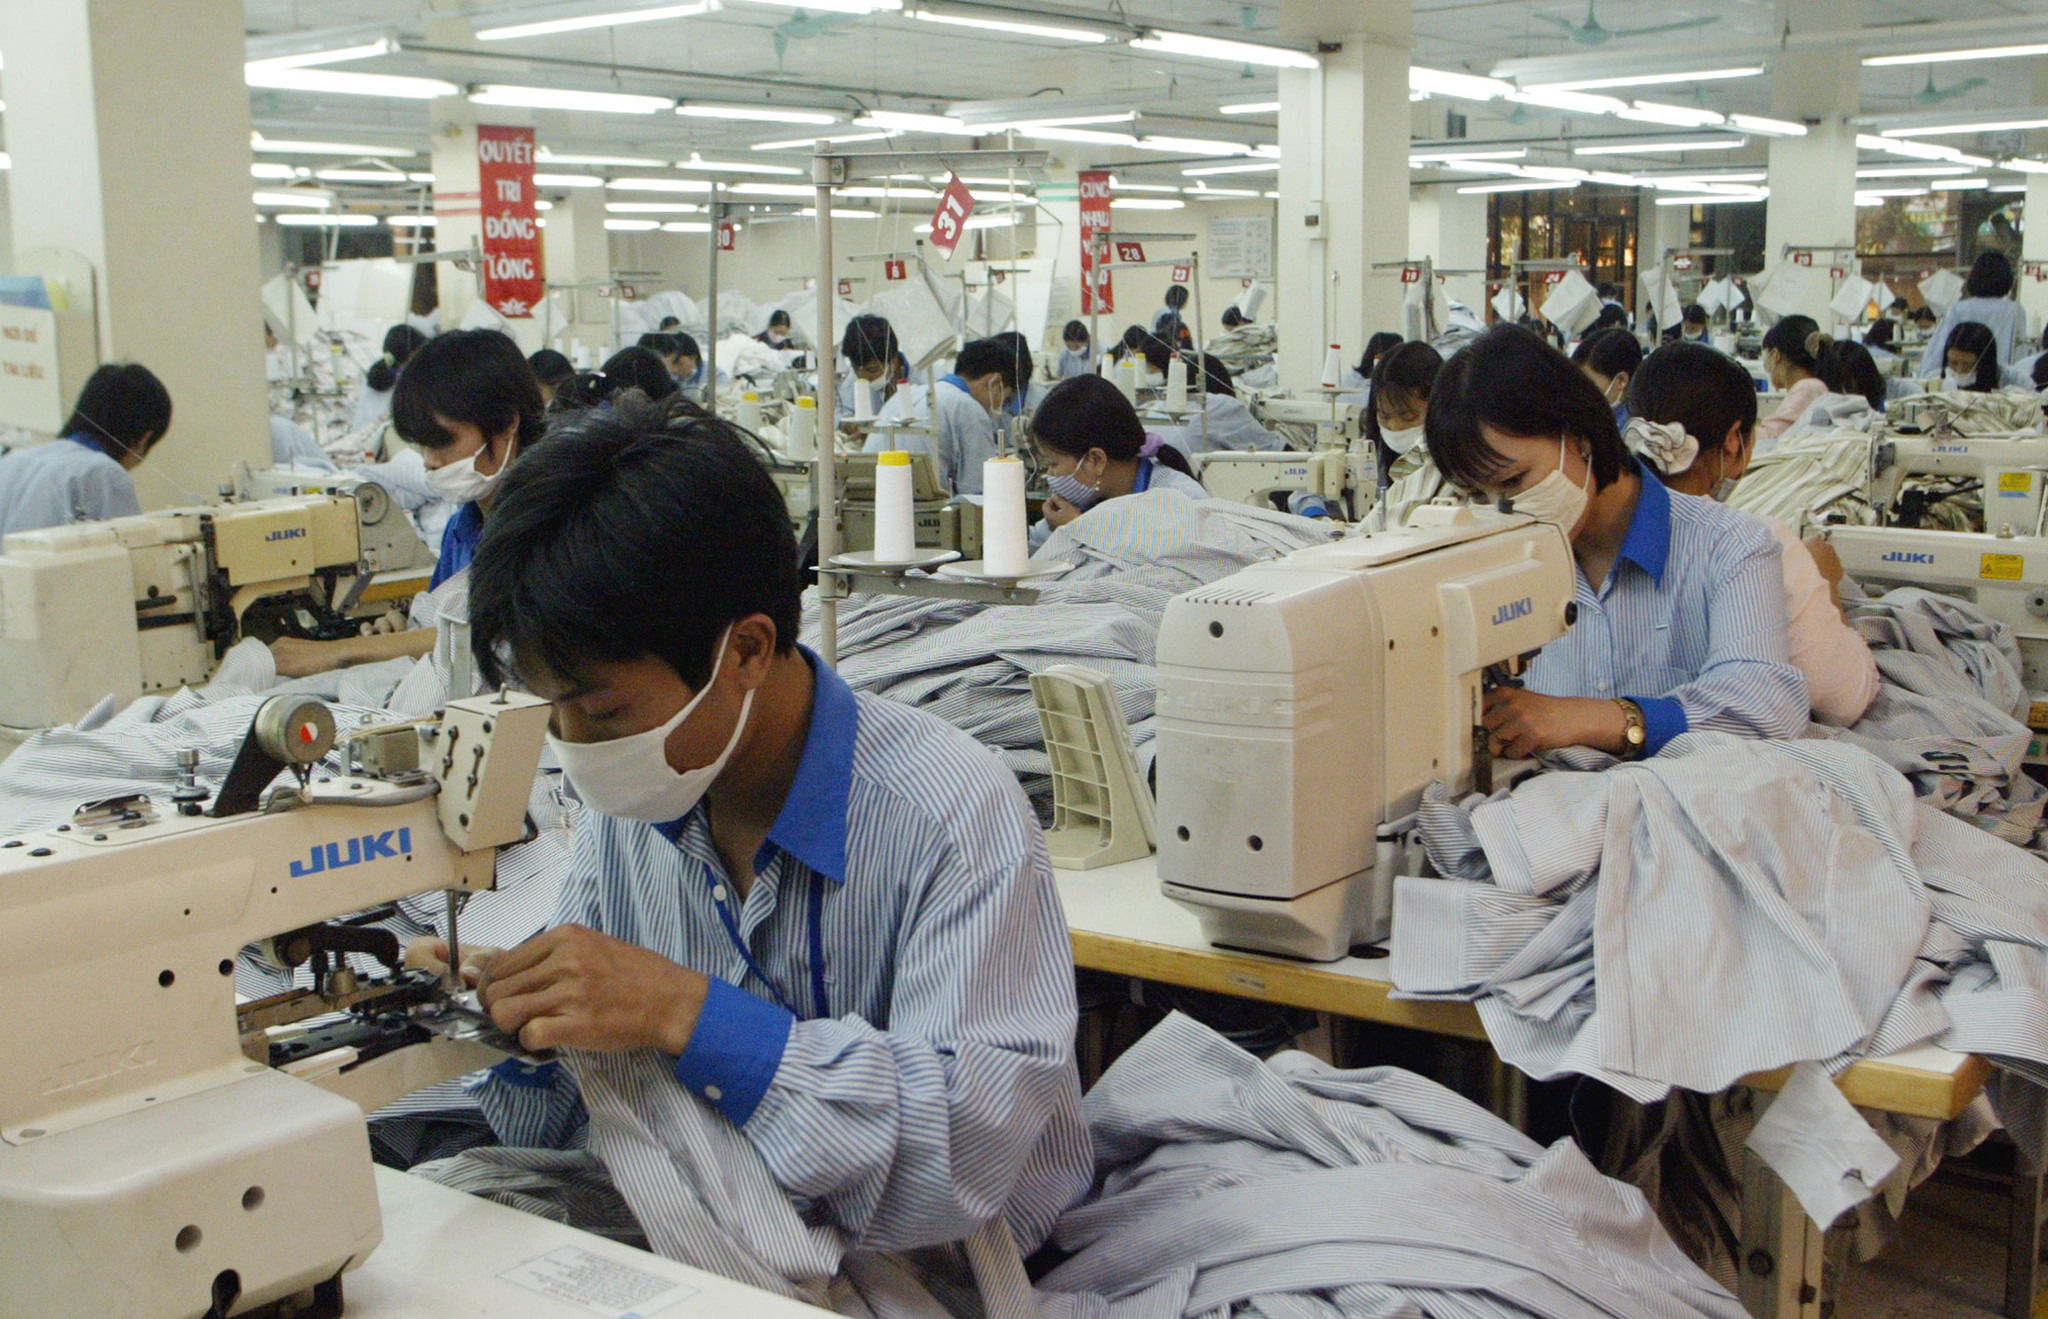 Workers at a garment factory in Vietnam.